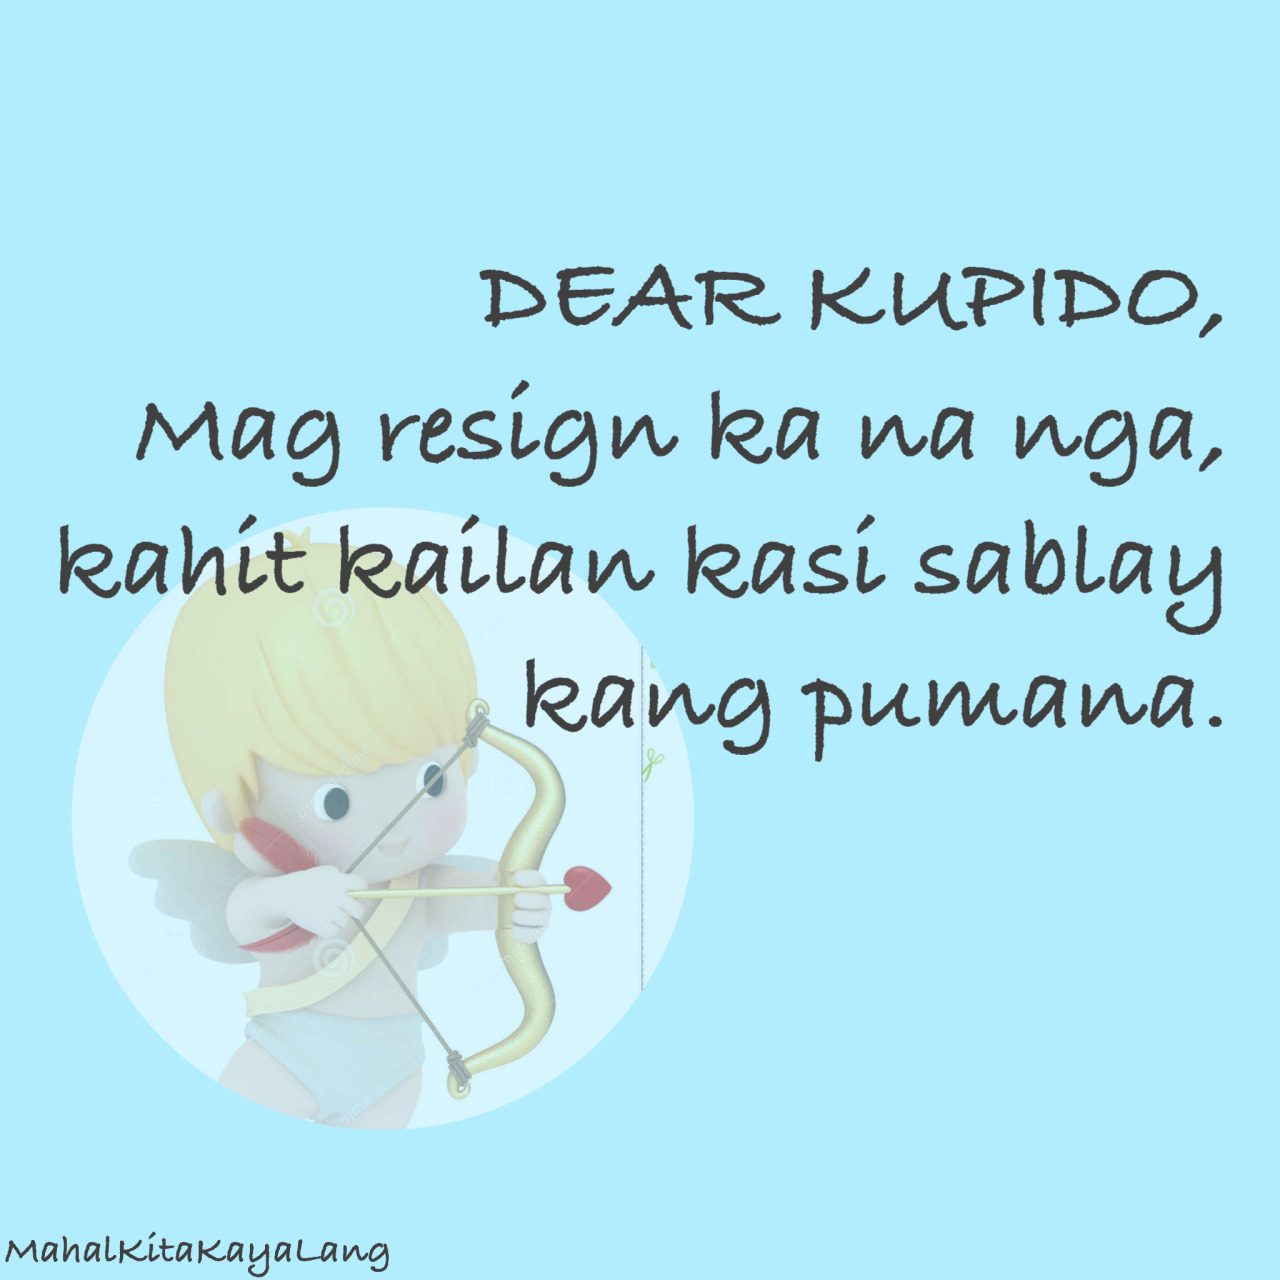 Quotes About Change Tagalog Tagalog Quotes About C...